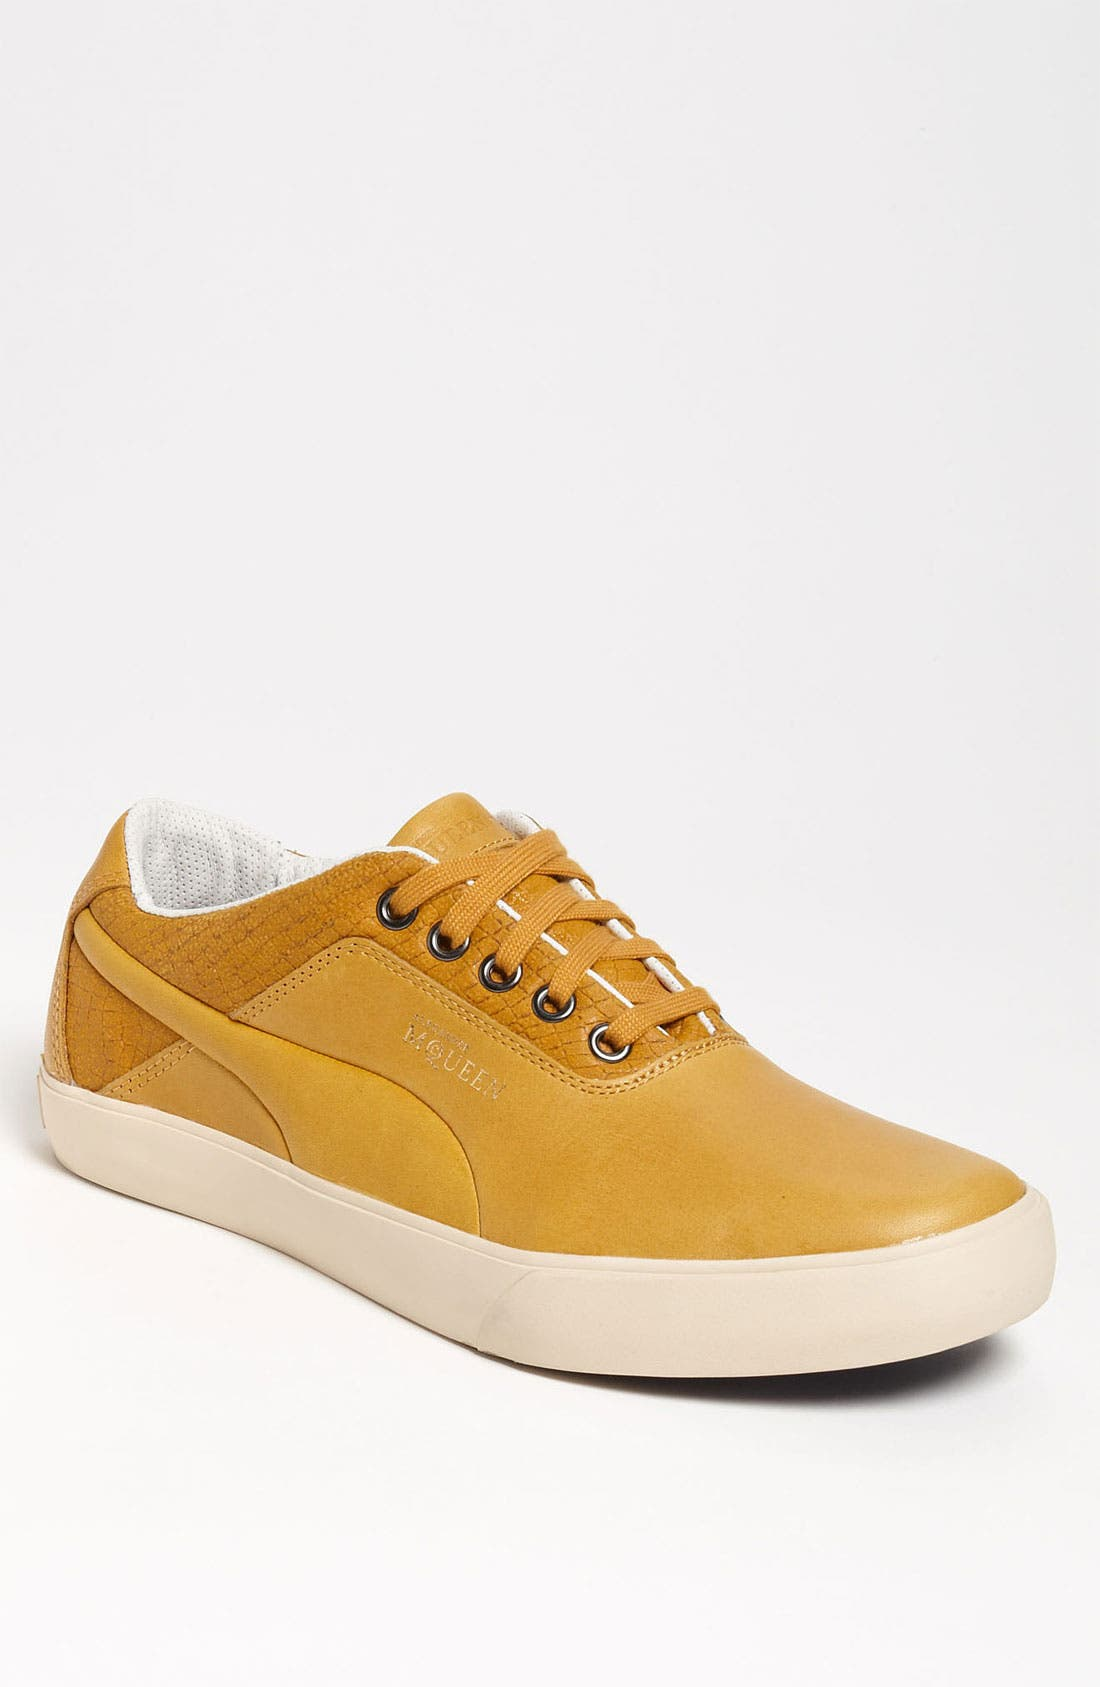 Alternate Image 1 Selected - Alexander McQueen PUMA 'Deck Lo' Sneaker